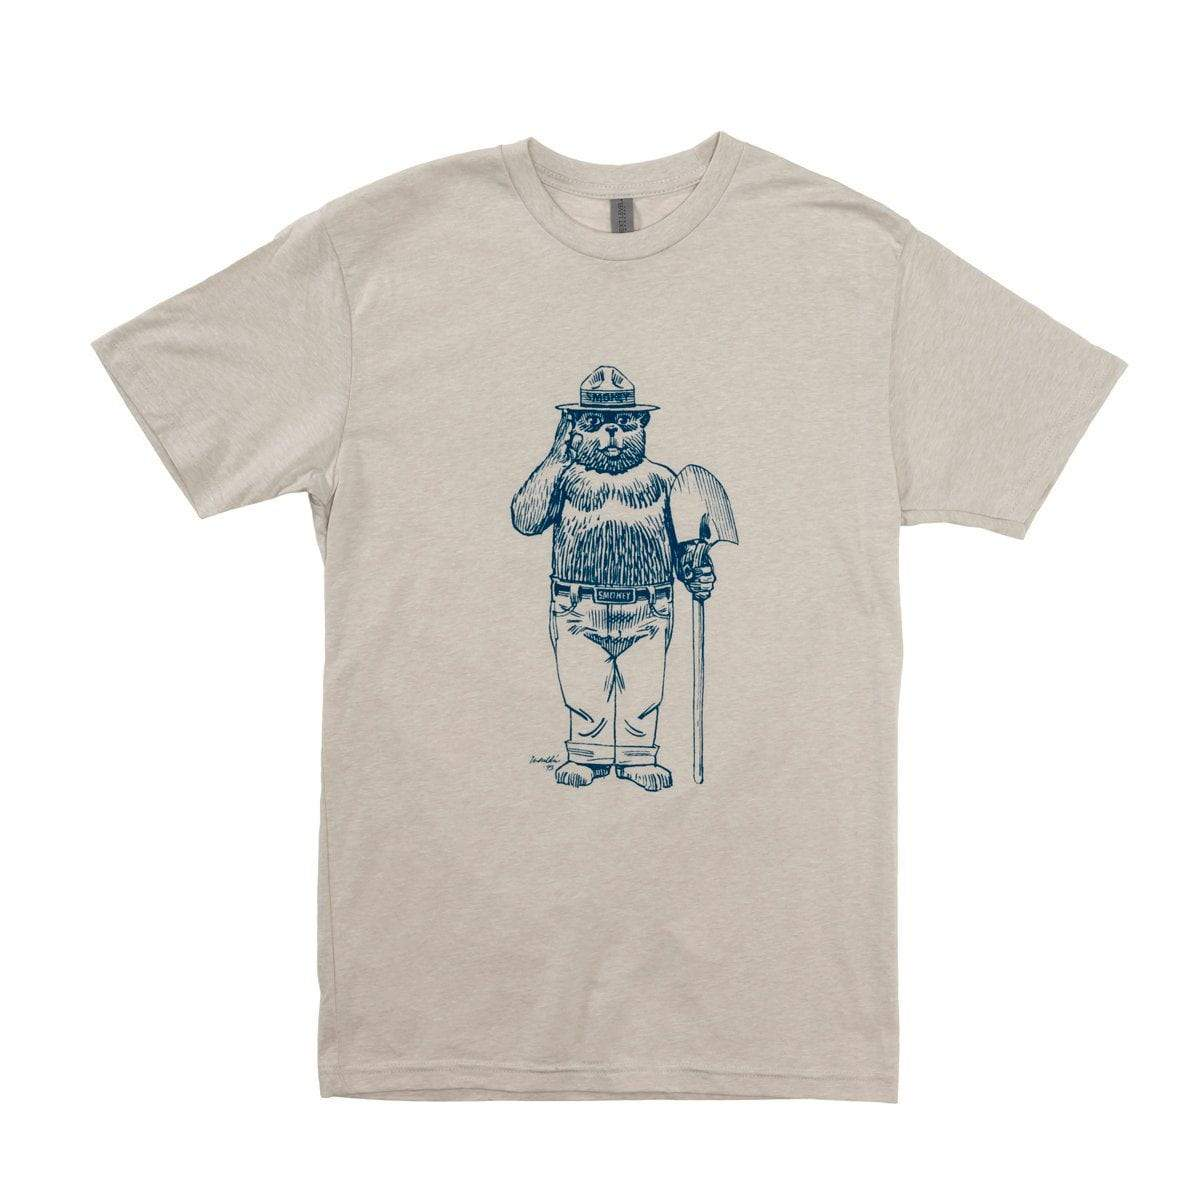 Accessories Adult Shirt- Smokey Bear